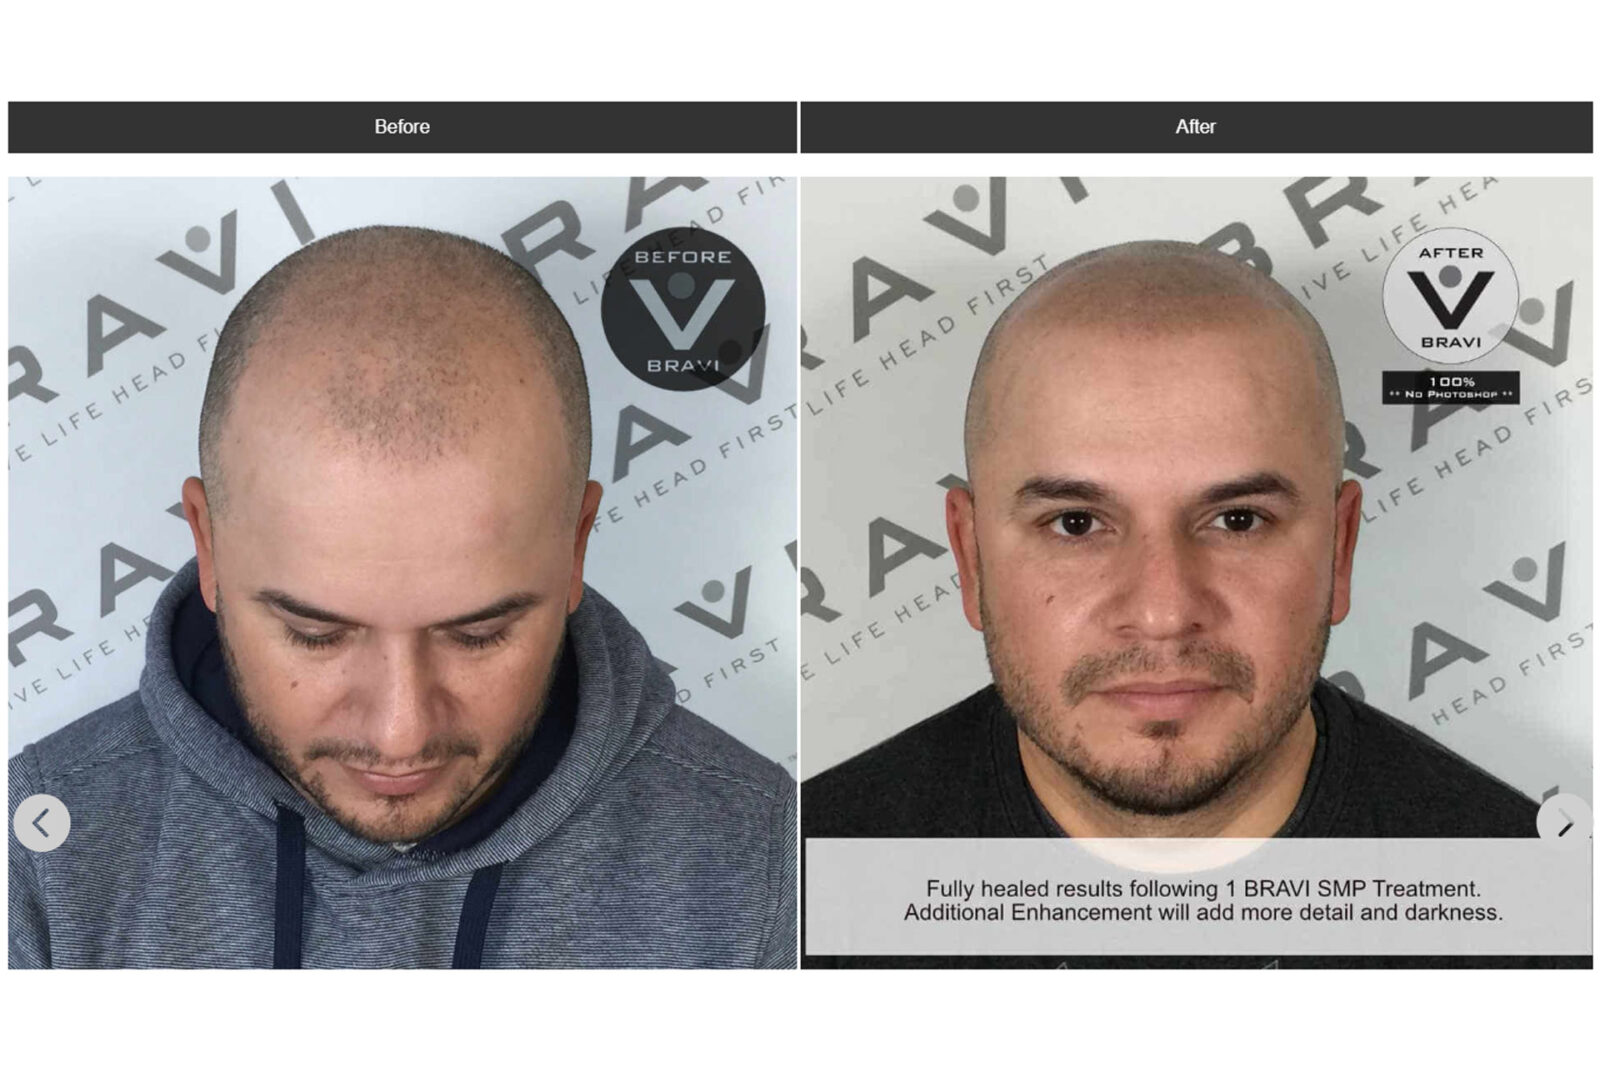 3 Ways Scalp MicroPigmentation Can Help You With Hair Loss